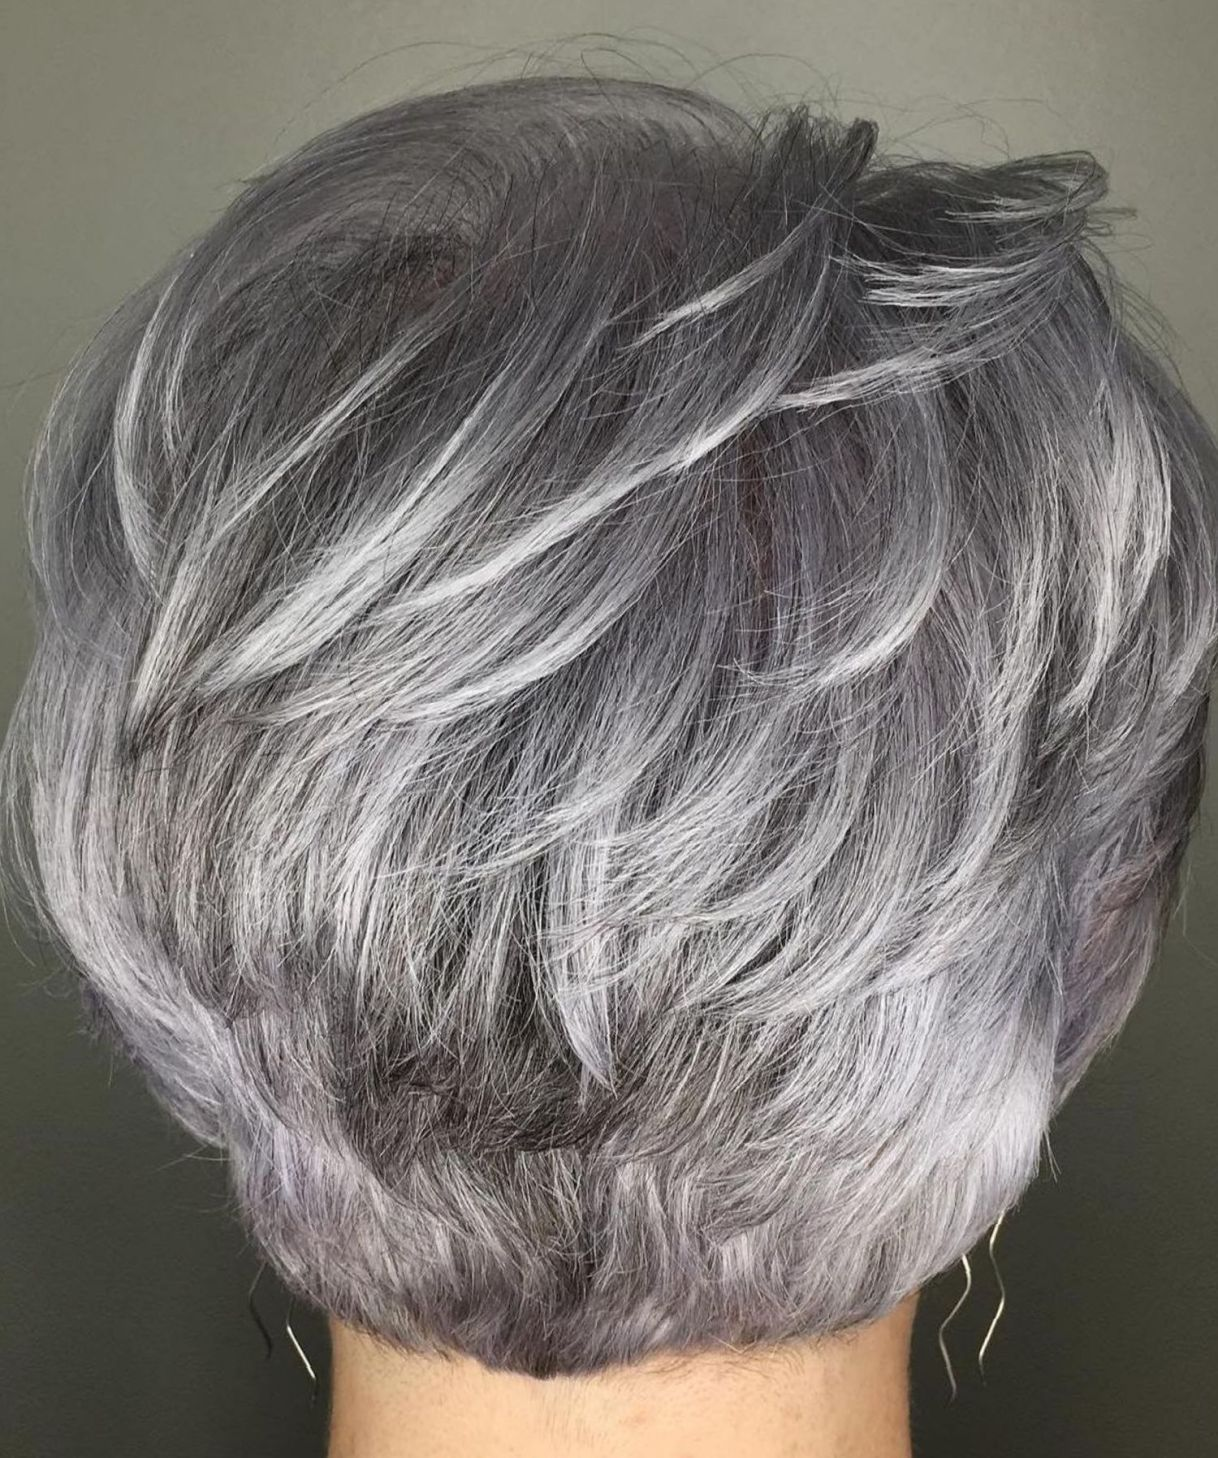 Feathered Gray Pixie  Hair styles, Gorgeous gray hair, Short hair